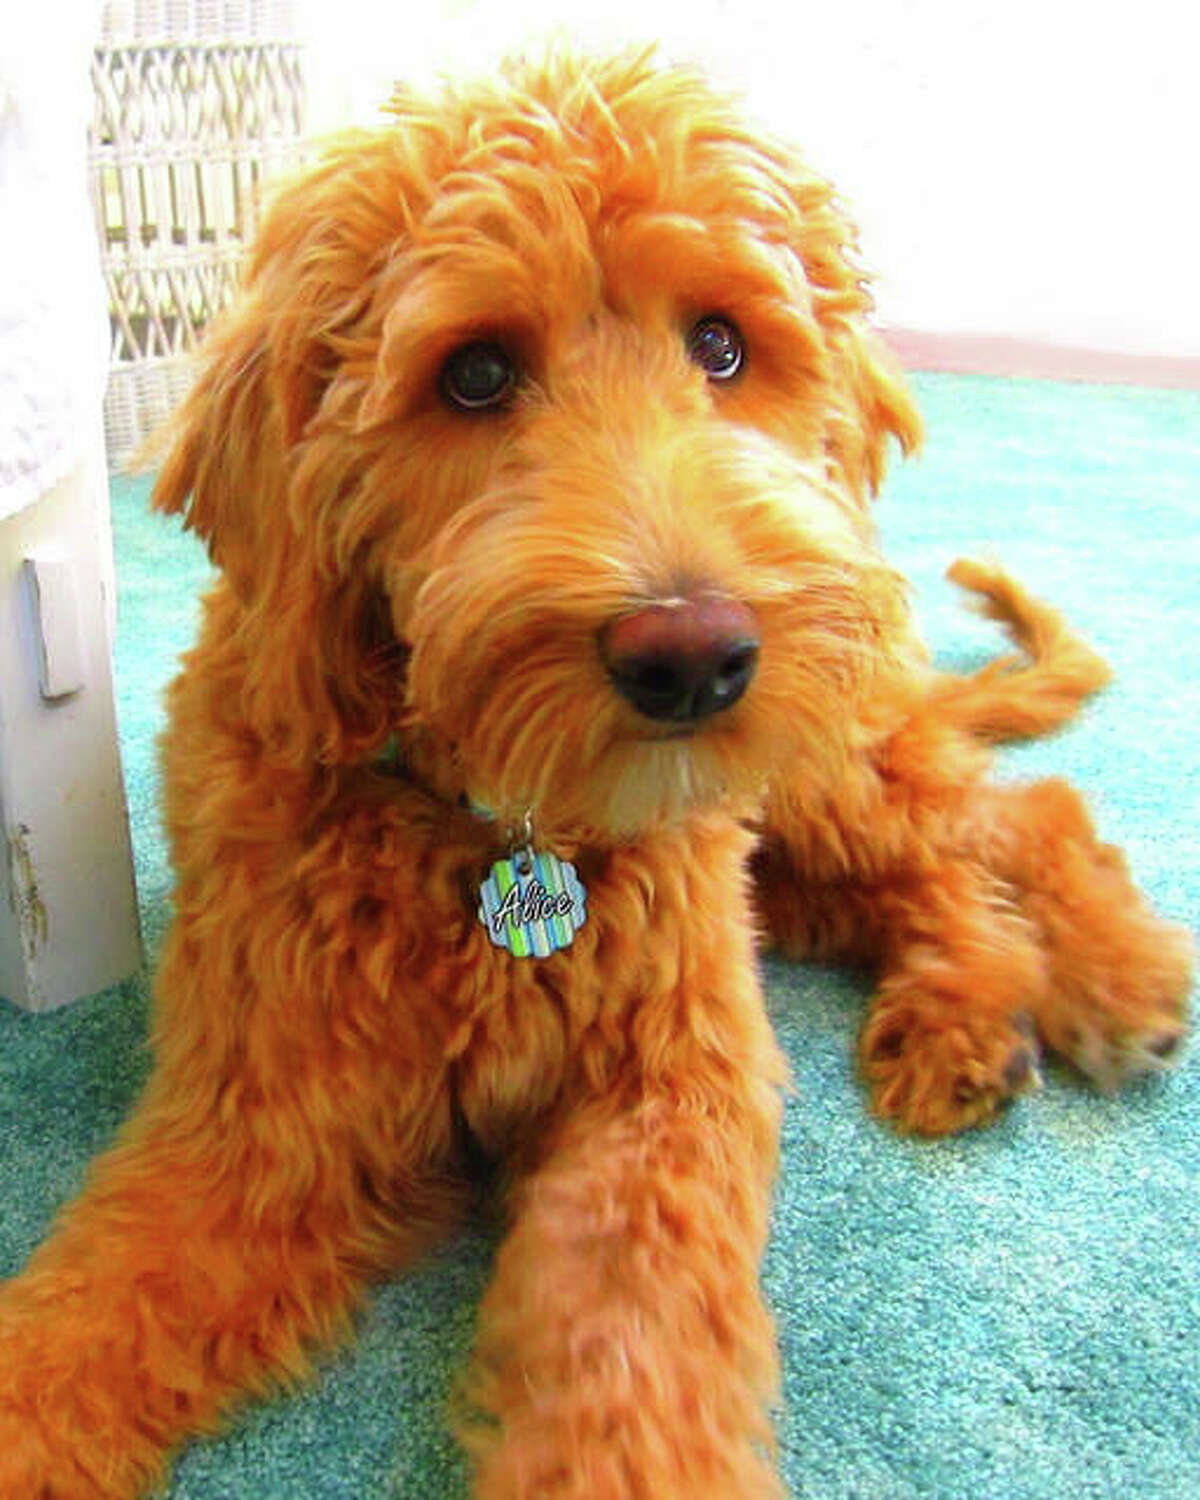 Sarah Kathryn Frey's Double Doodle service dog, Alice Eloise, is the subject and the inspiration for her new children's book,